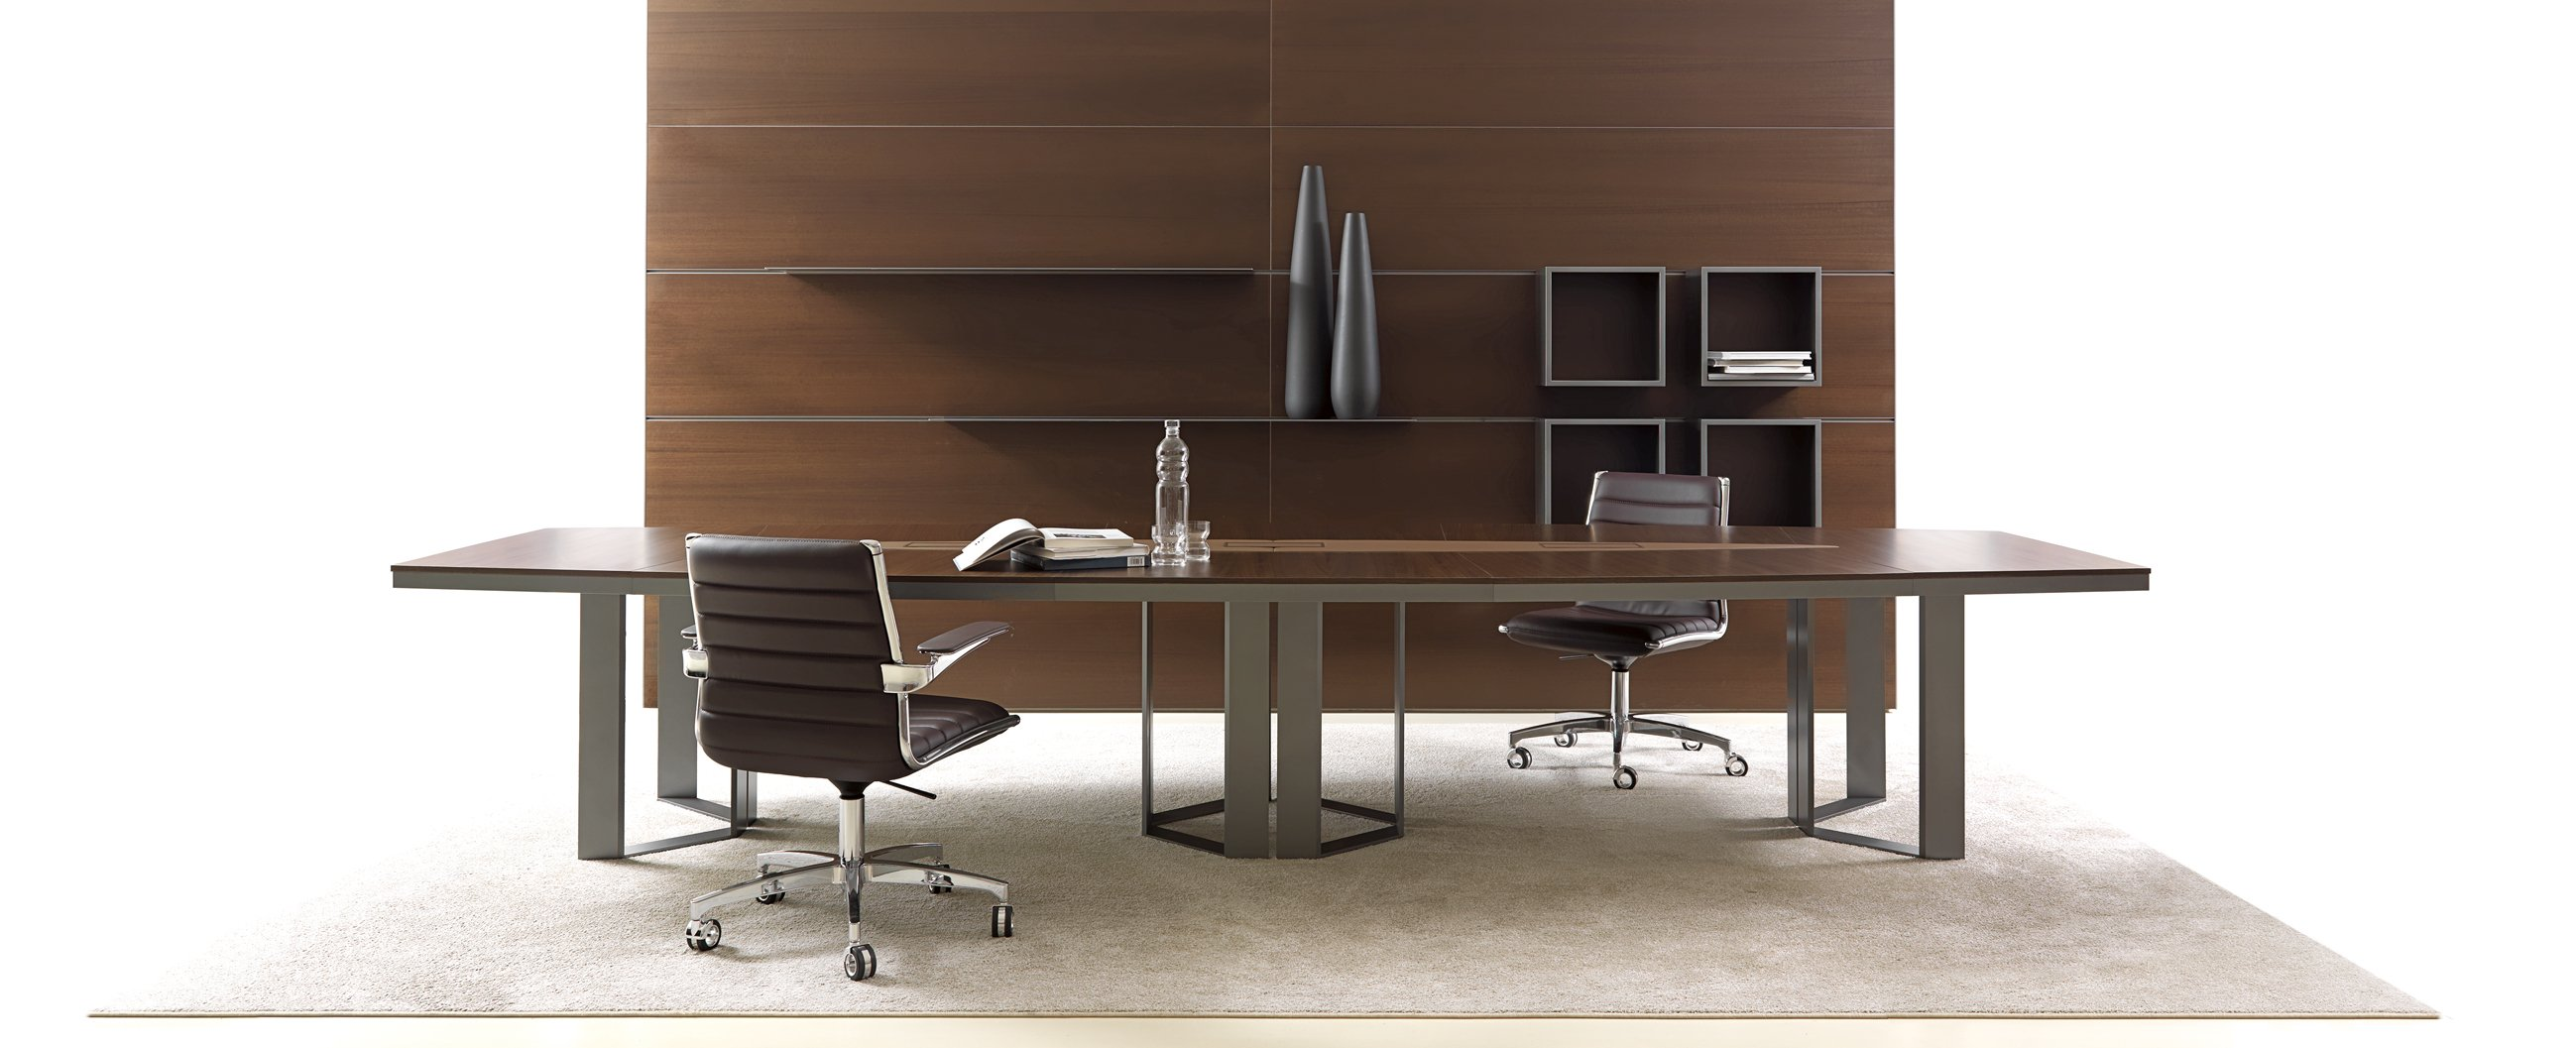 Office meeting tables office furniture ivm office for Arredamento mobili roma